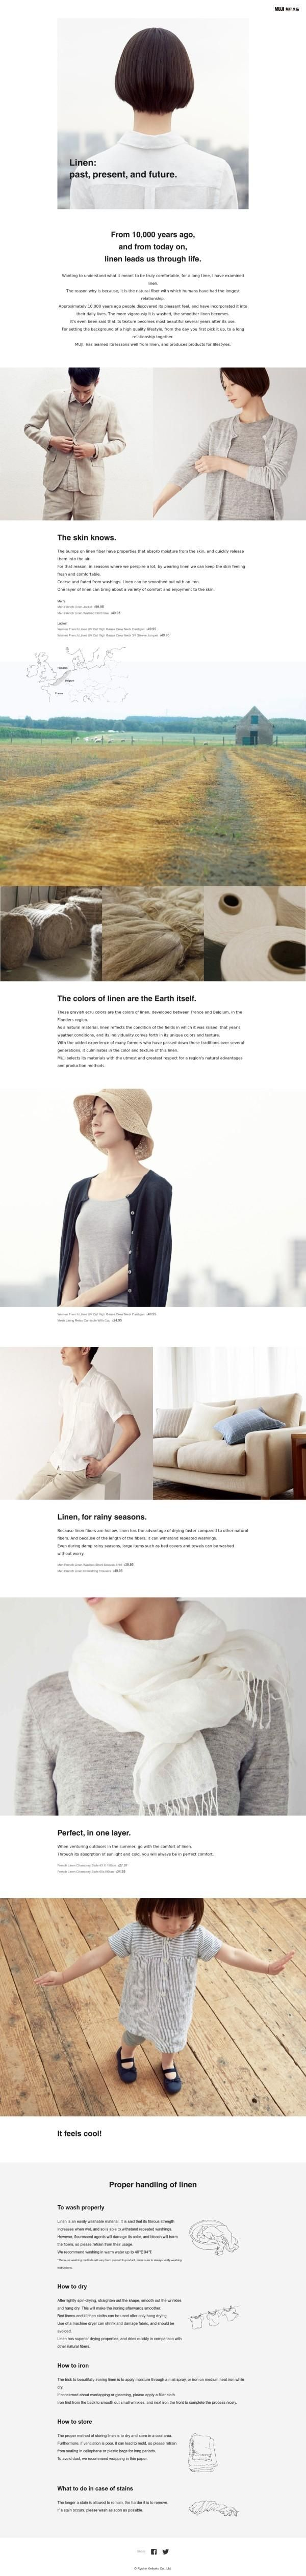 182 best muji images on Pinterest